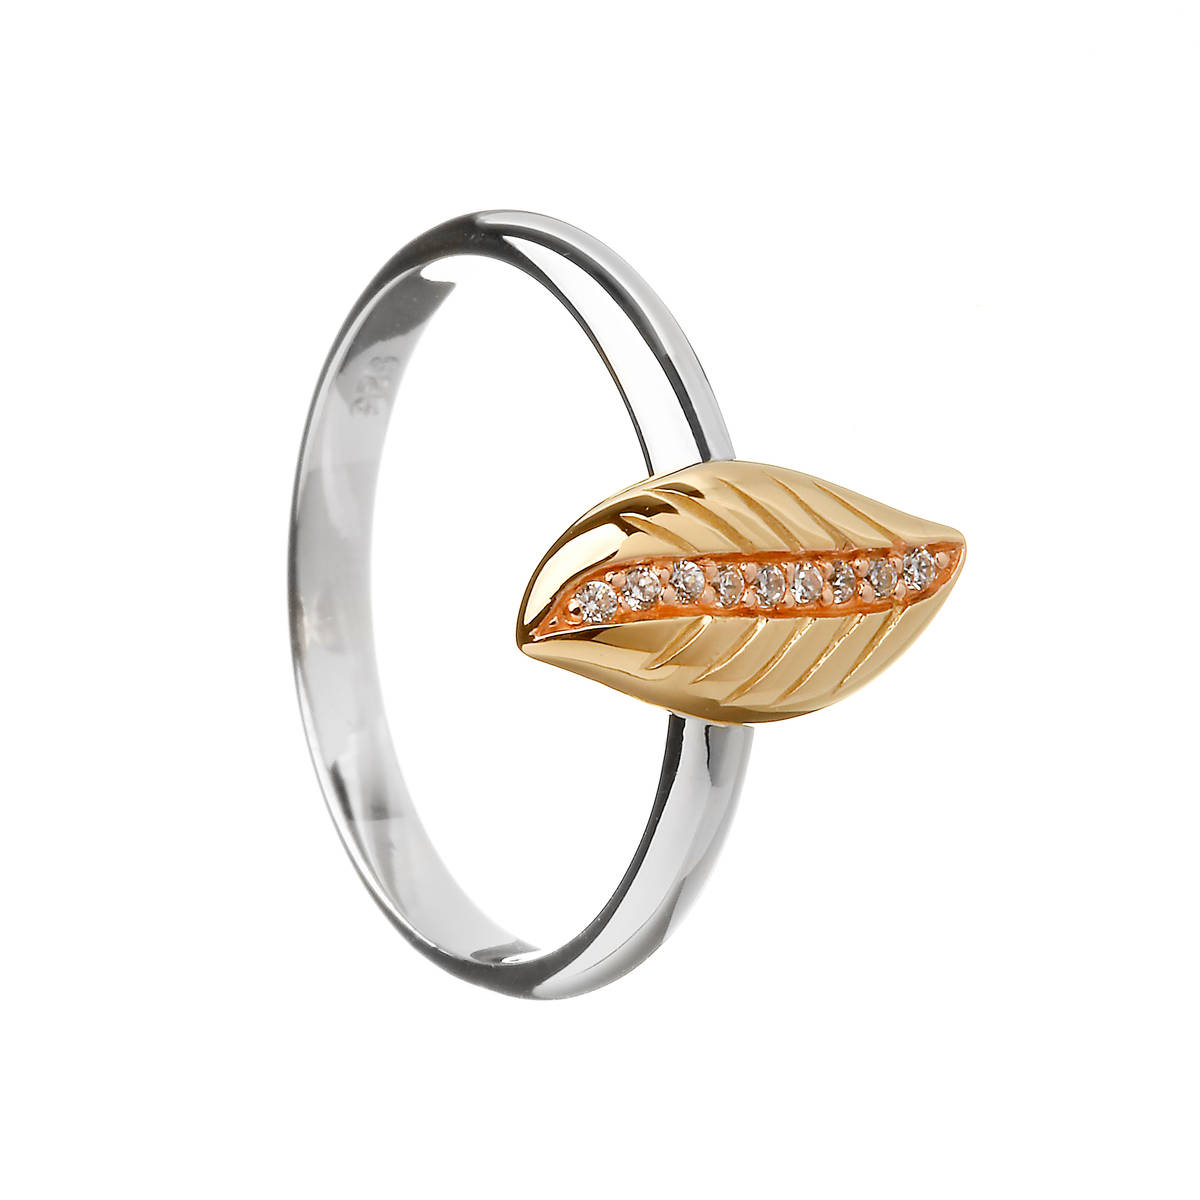 House of Lor silver/rose gold cz ring leaf made from rare Irish gold